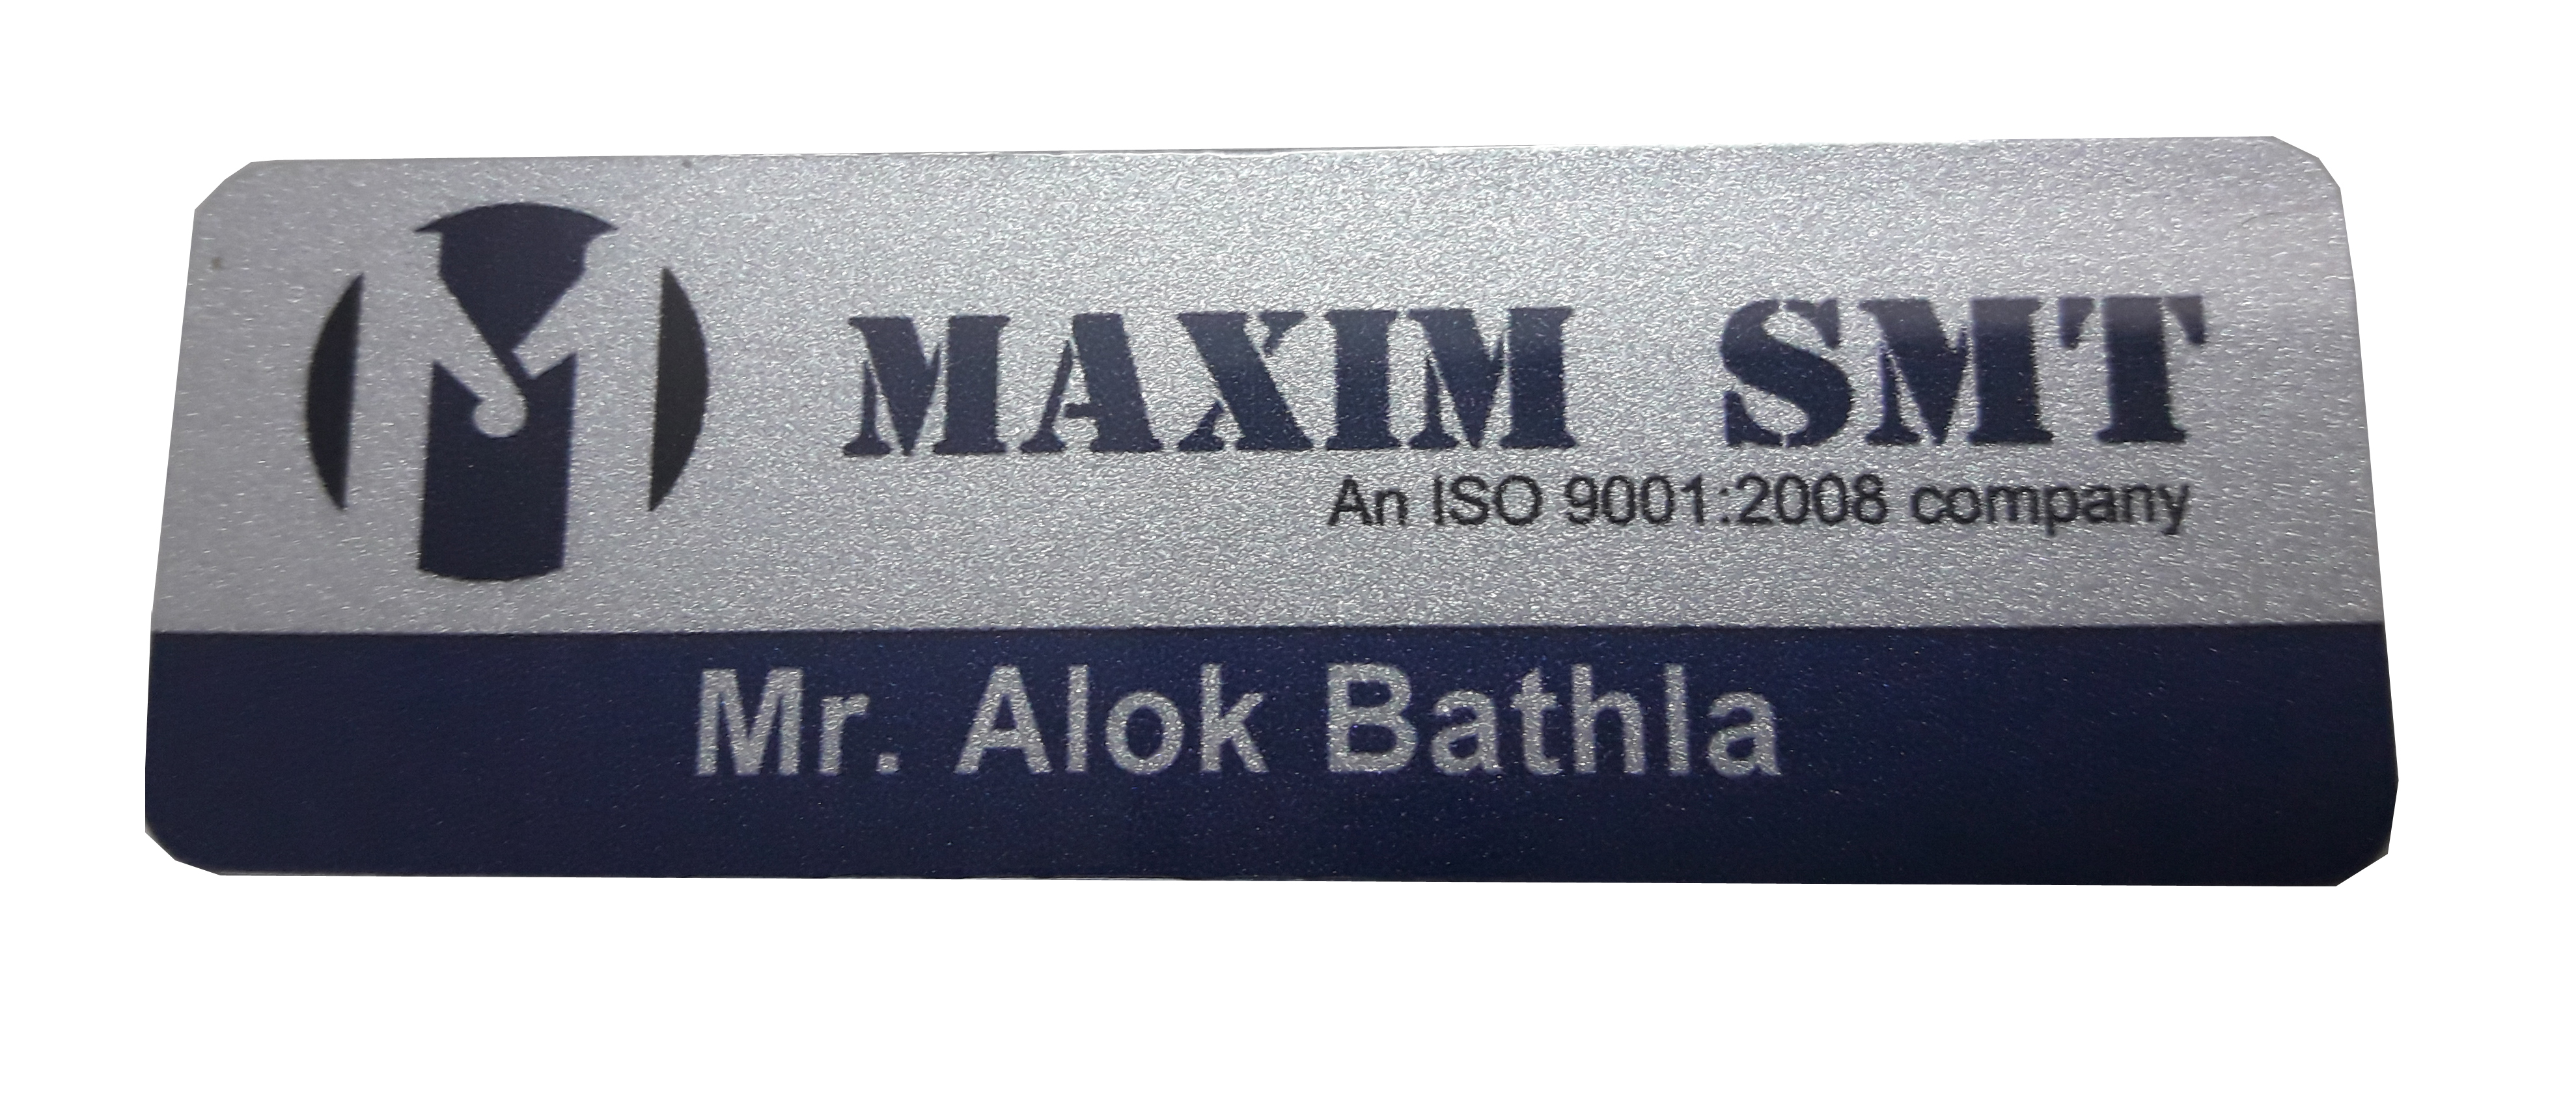 Metallic Name Badges